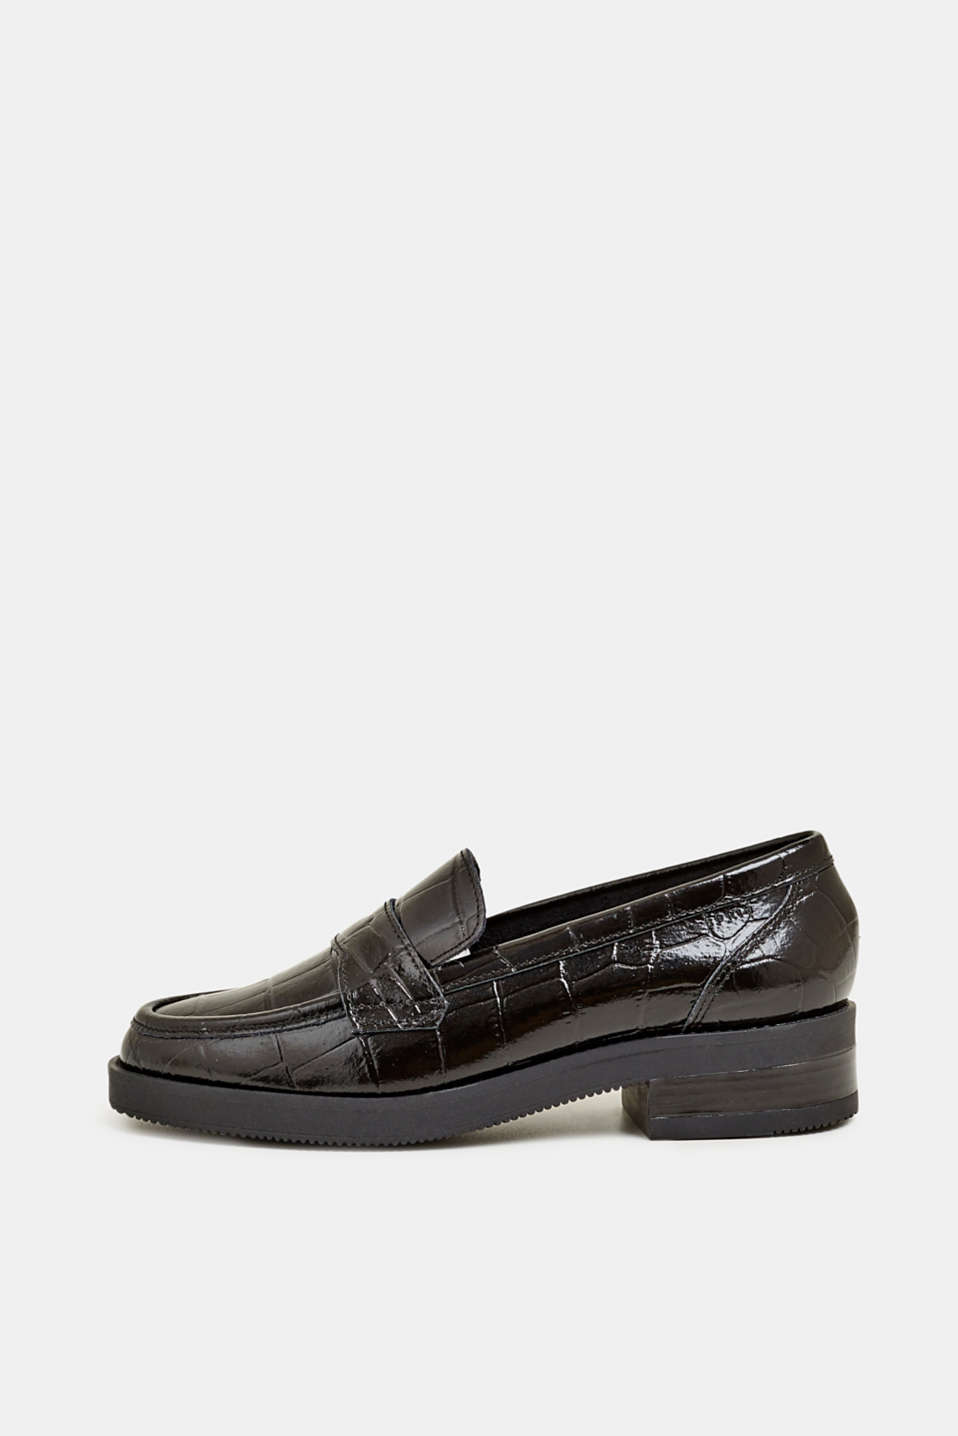 Esprit - Lack-Loafers in Schlangen-Optik